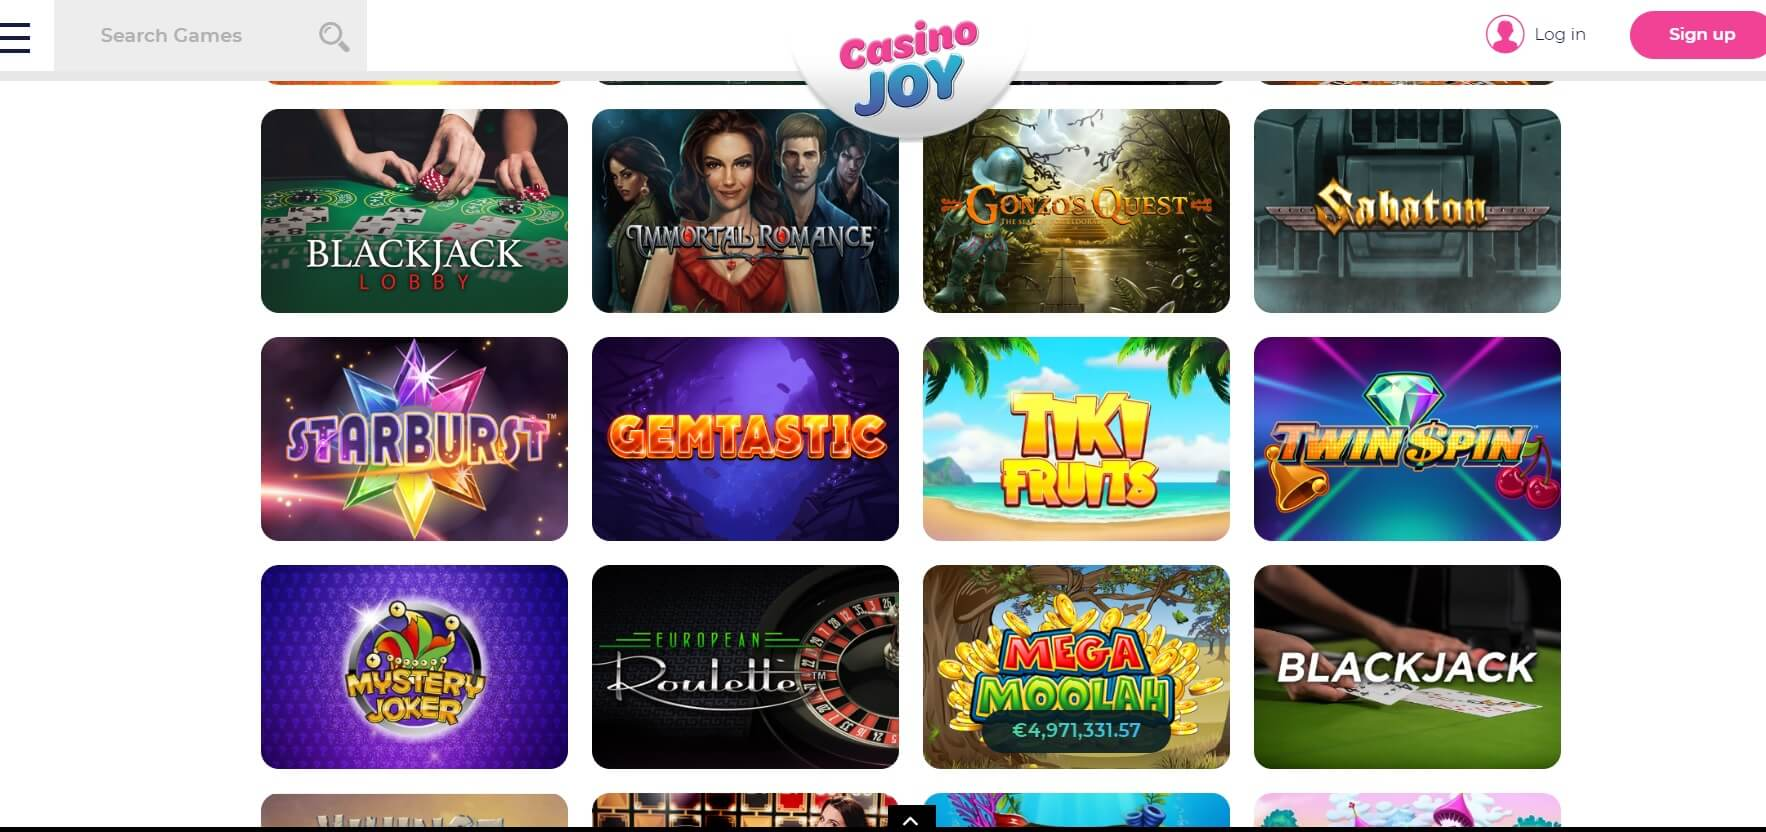 casino joy online review uk